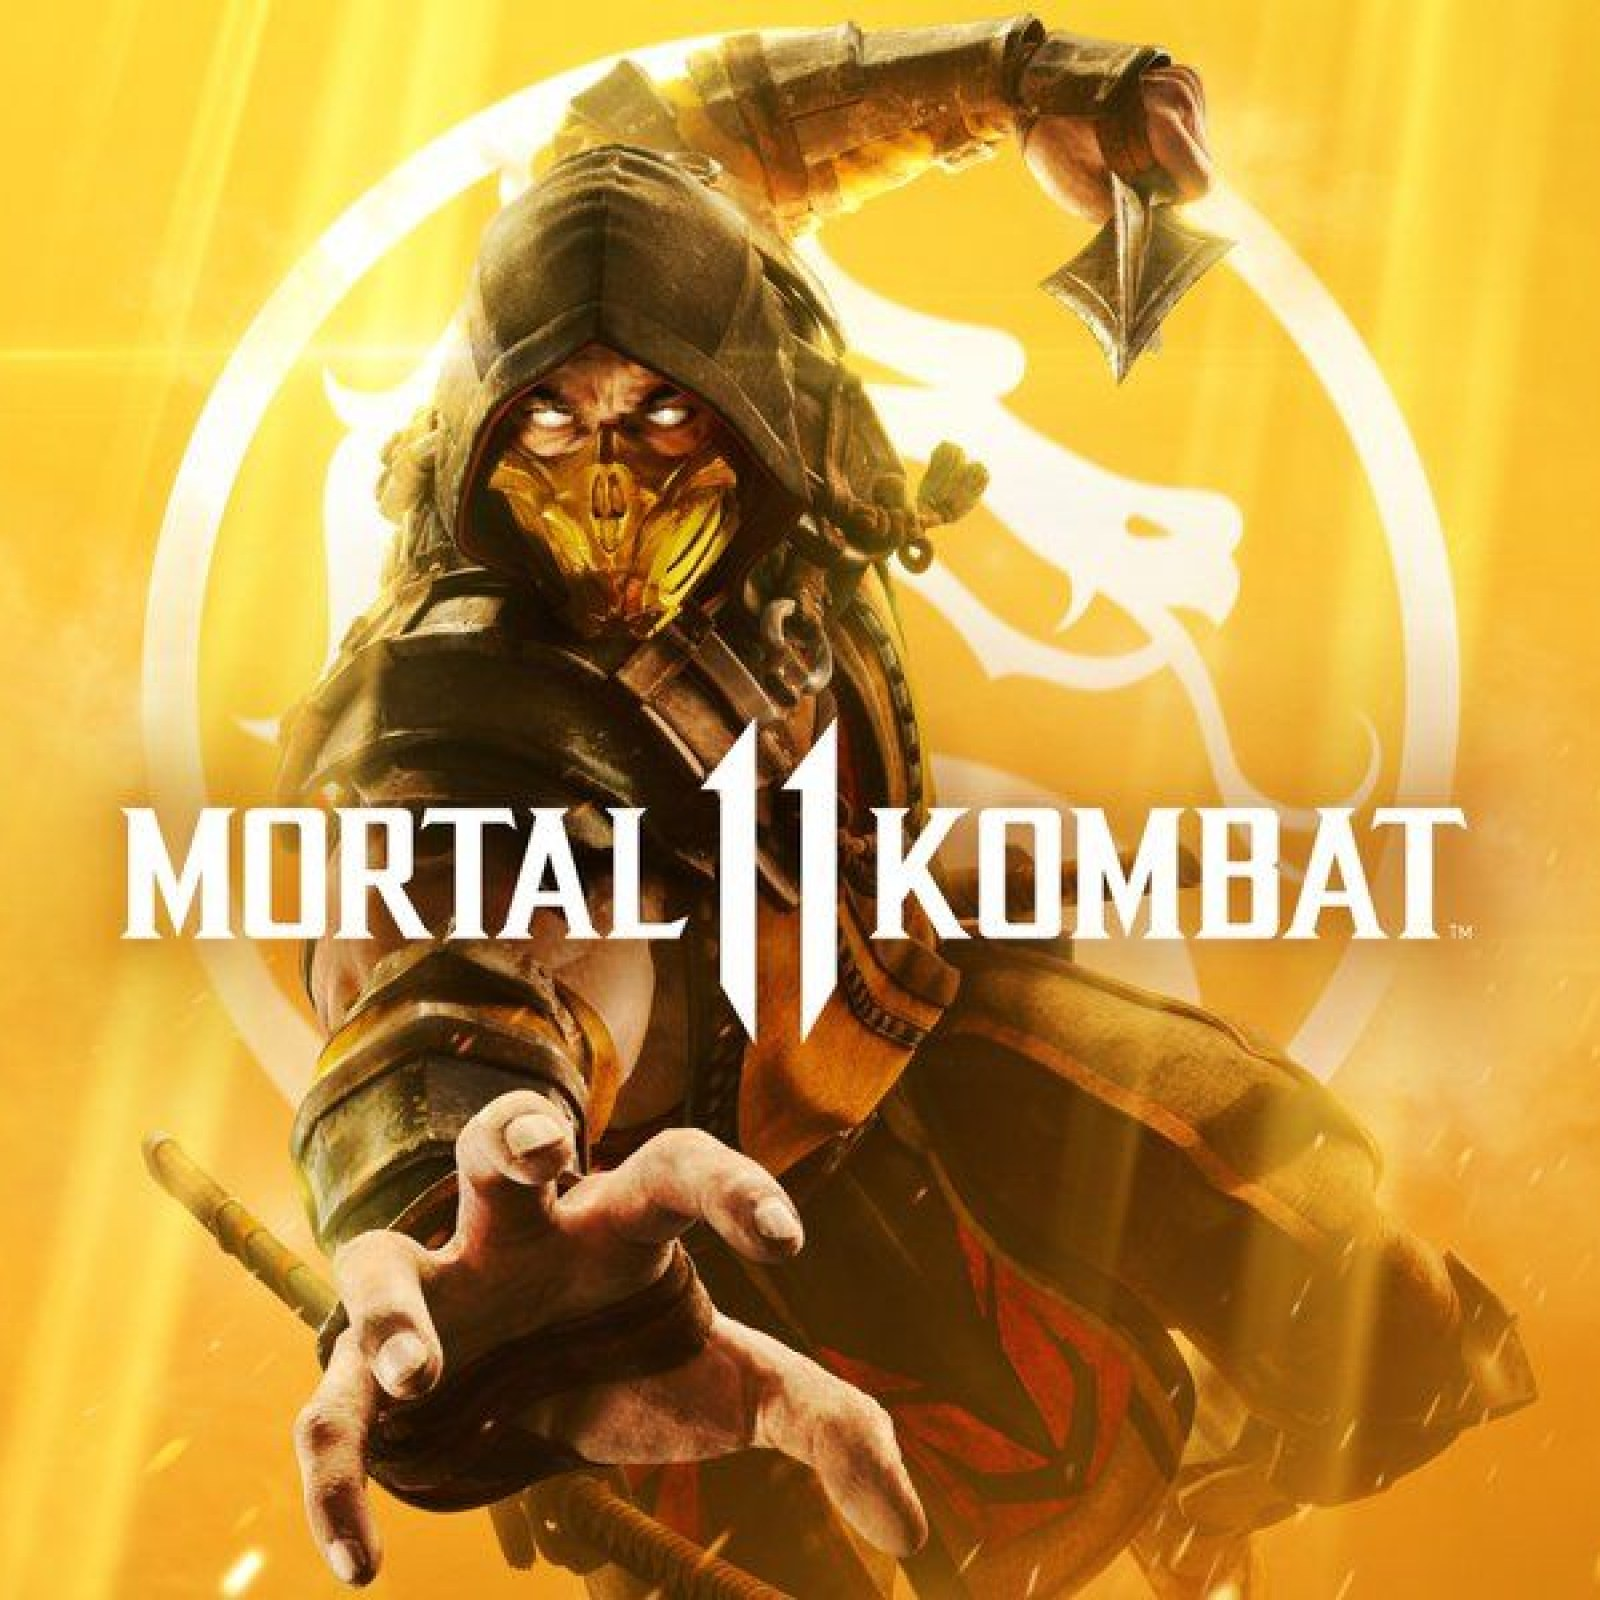 Mortal Kombat 11 Cover Reveals Scorpion In His Fiery Glory